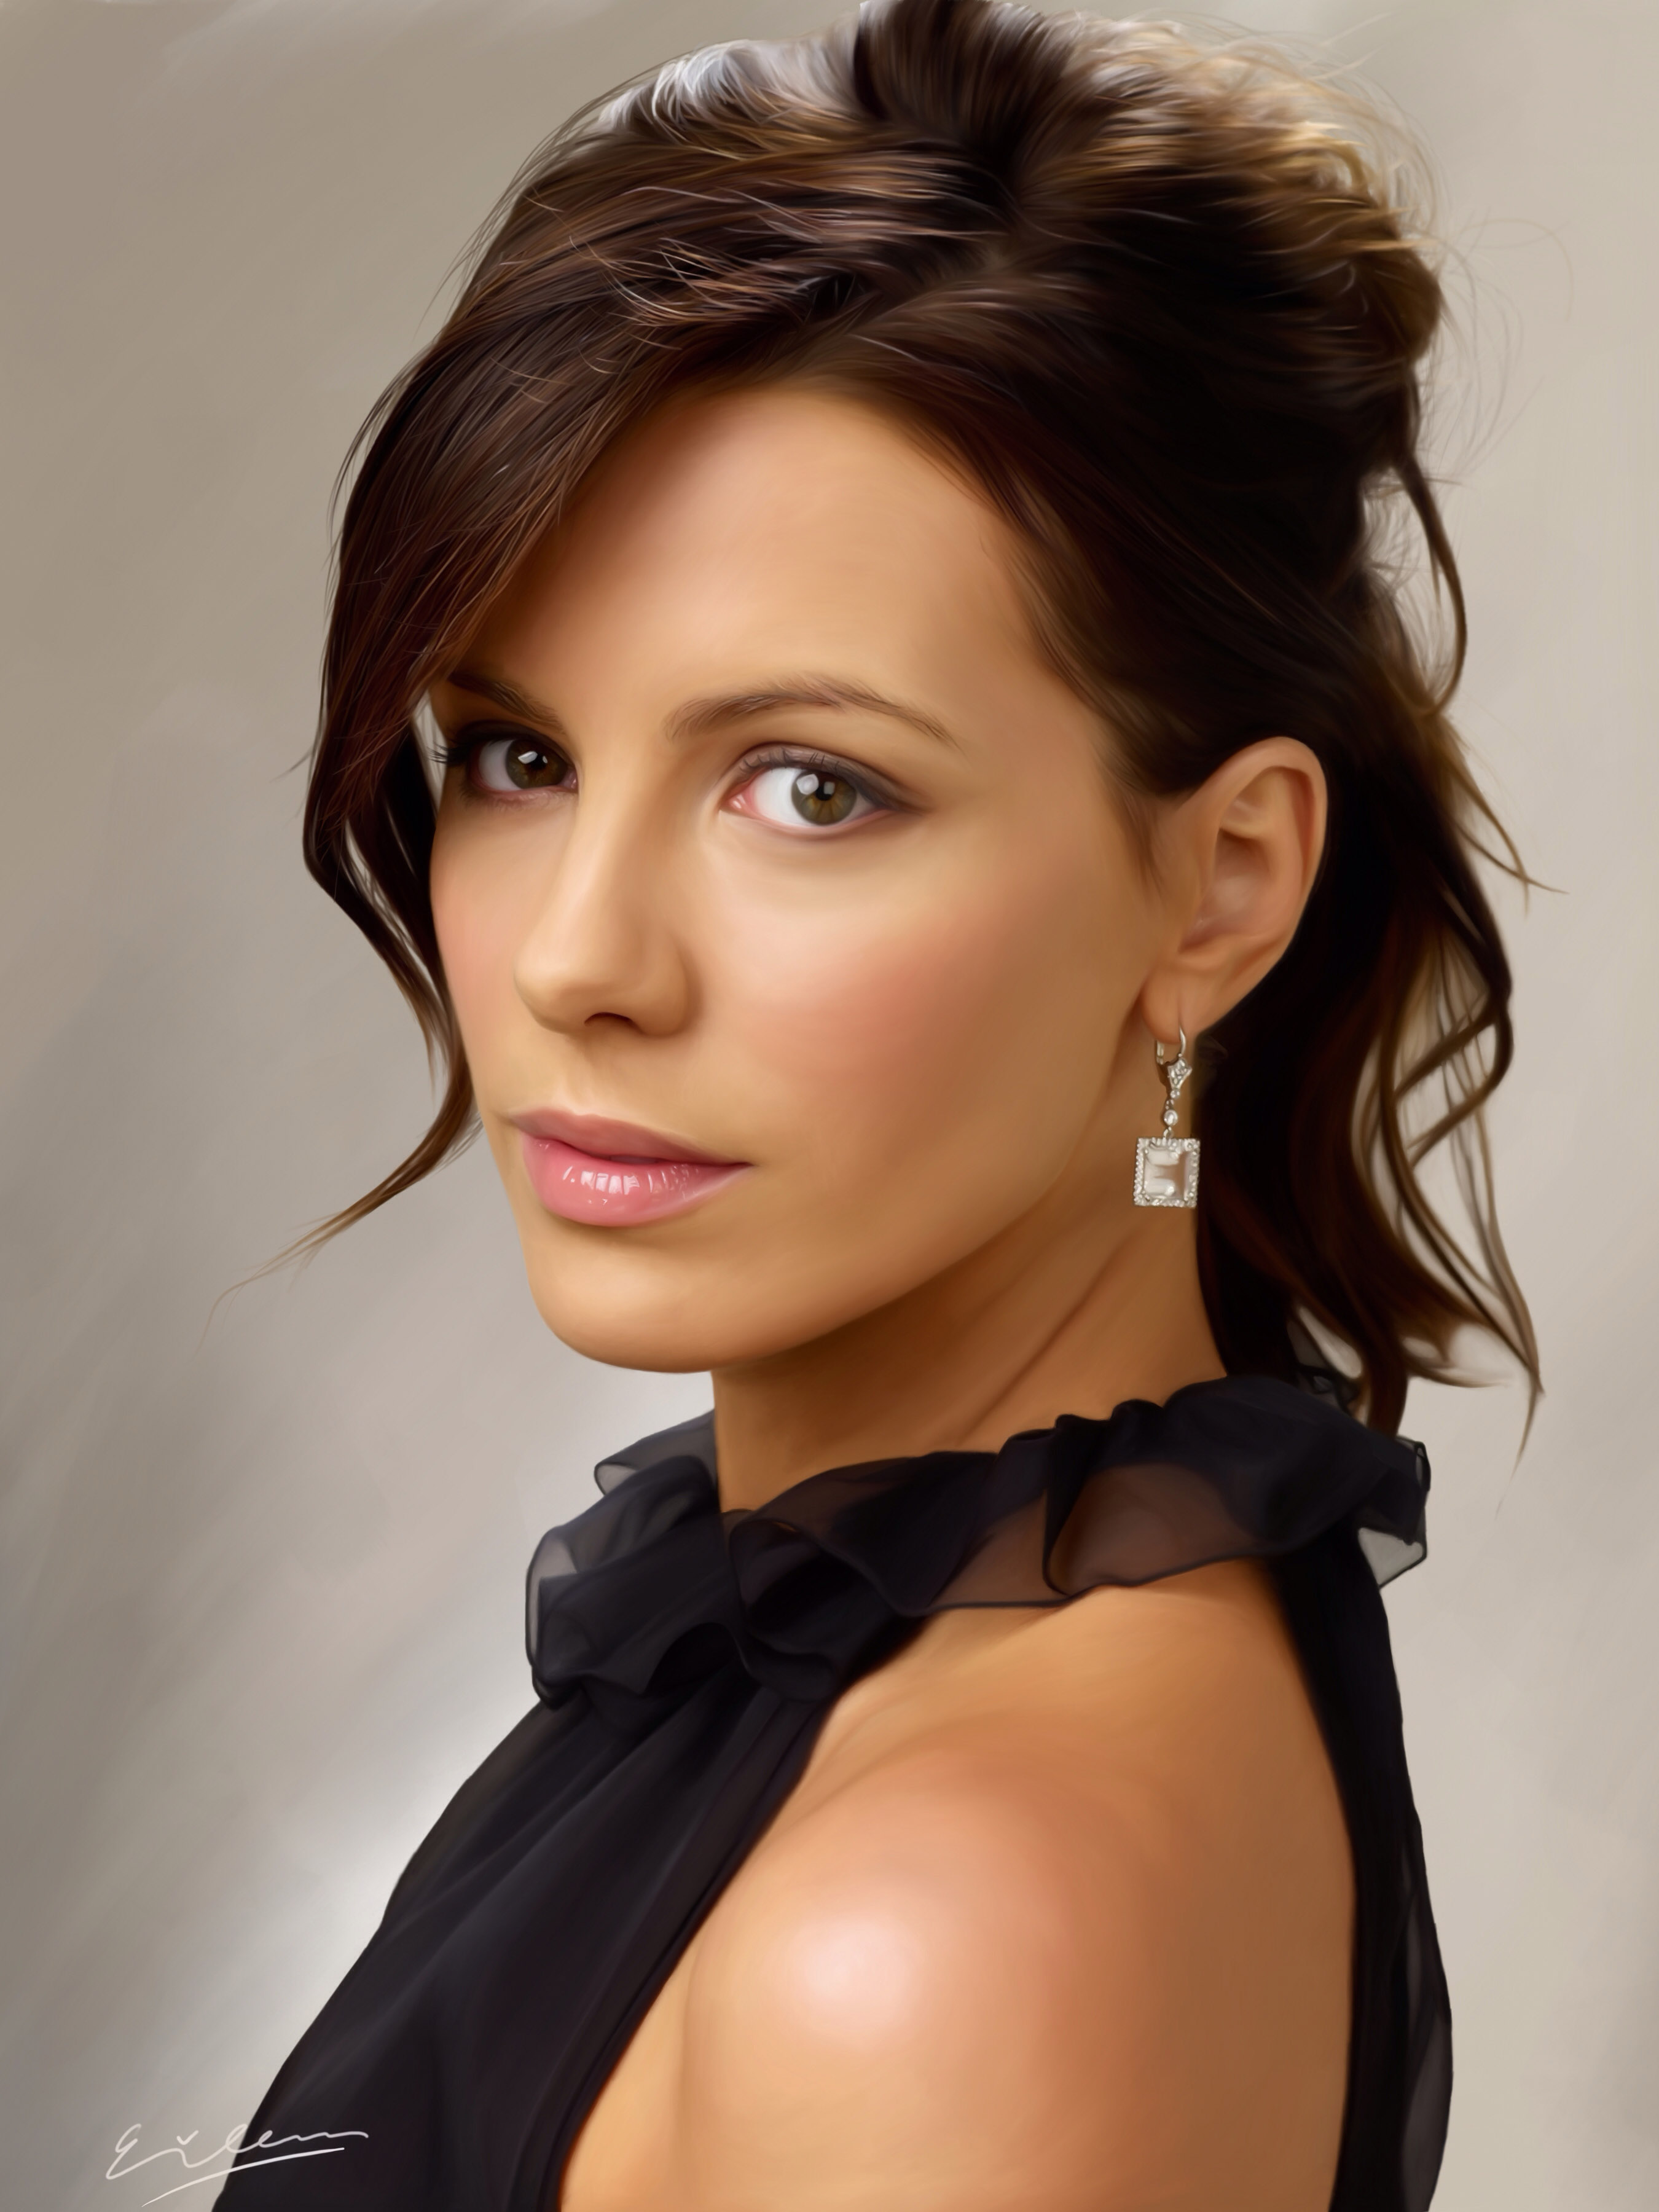 Airbrushed and Idealized Young Kate Beckinsale as LADY LIBERTY - Magic Painting by Eileen Irma - There is NOTHING WRONG with this picture. This is an idealized beautiful and confident young woman dressing as she pleases. Note the brown hair and brown eyes.